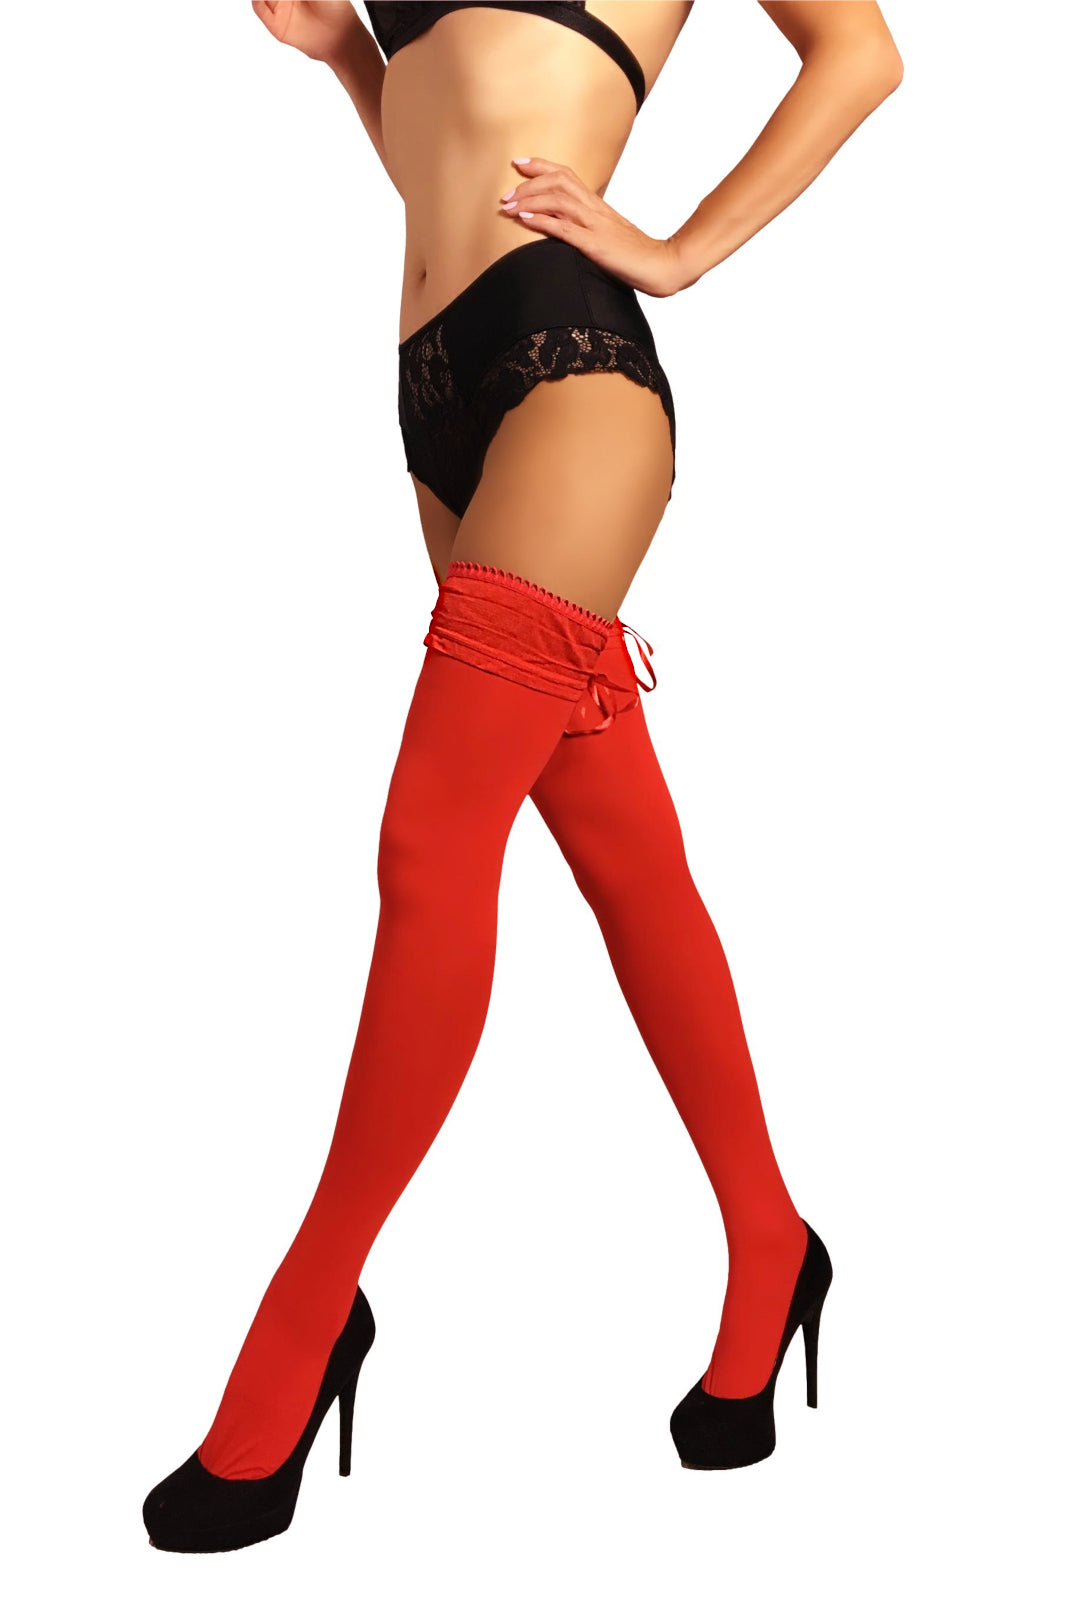 Opaque Thigh Highs 100 Den with Laced Top - Red